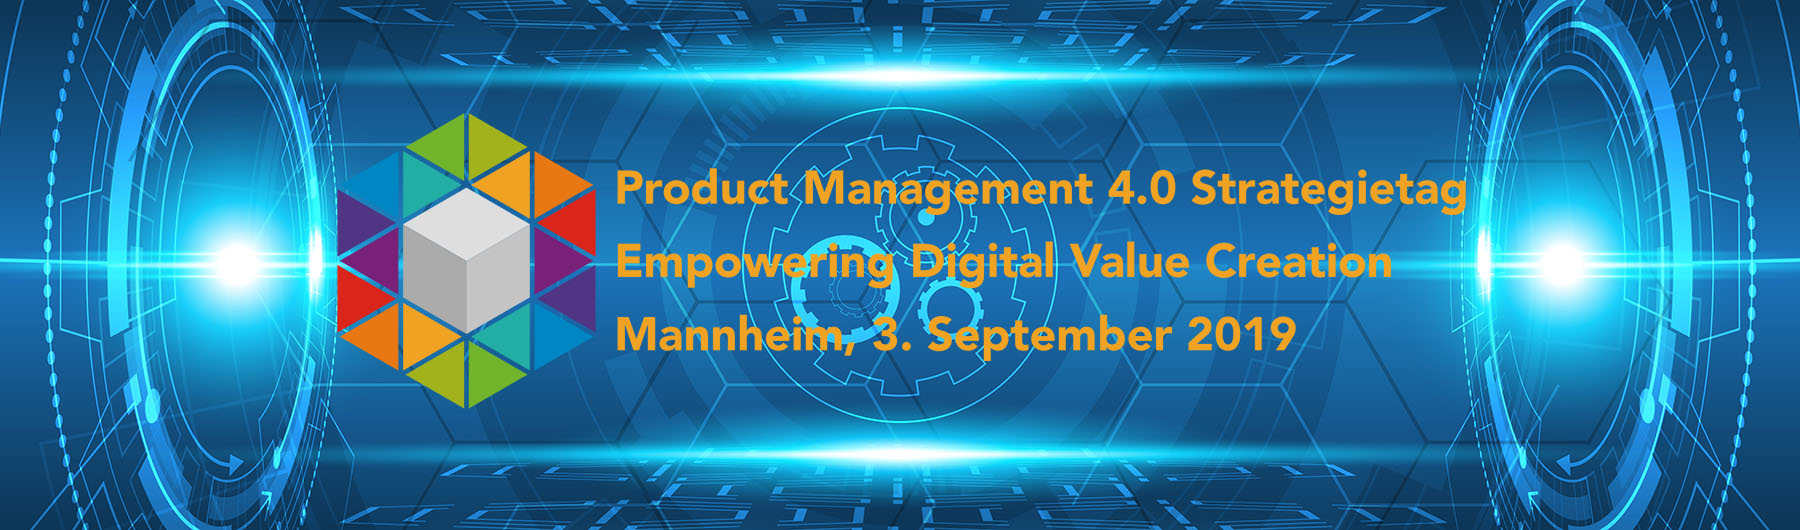 Product Management 4.0 Strategietag, 03.09.2019, Mannheim